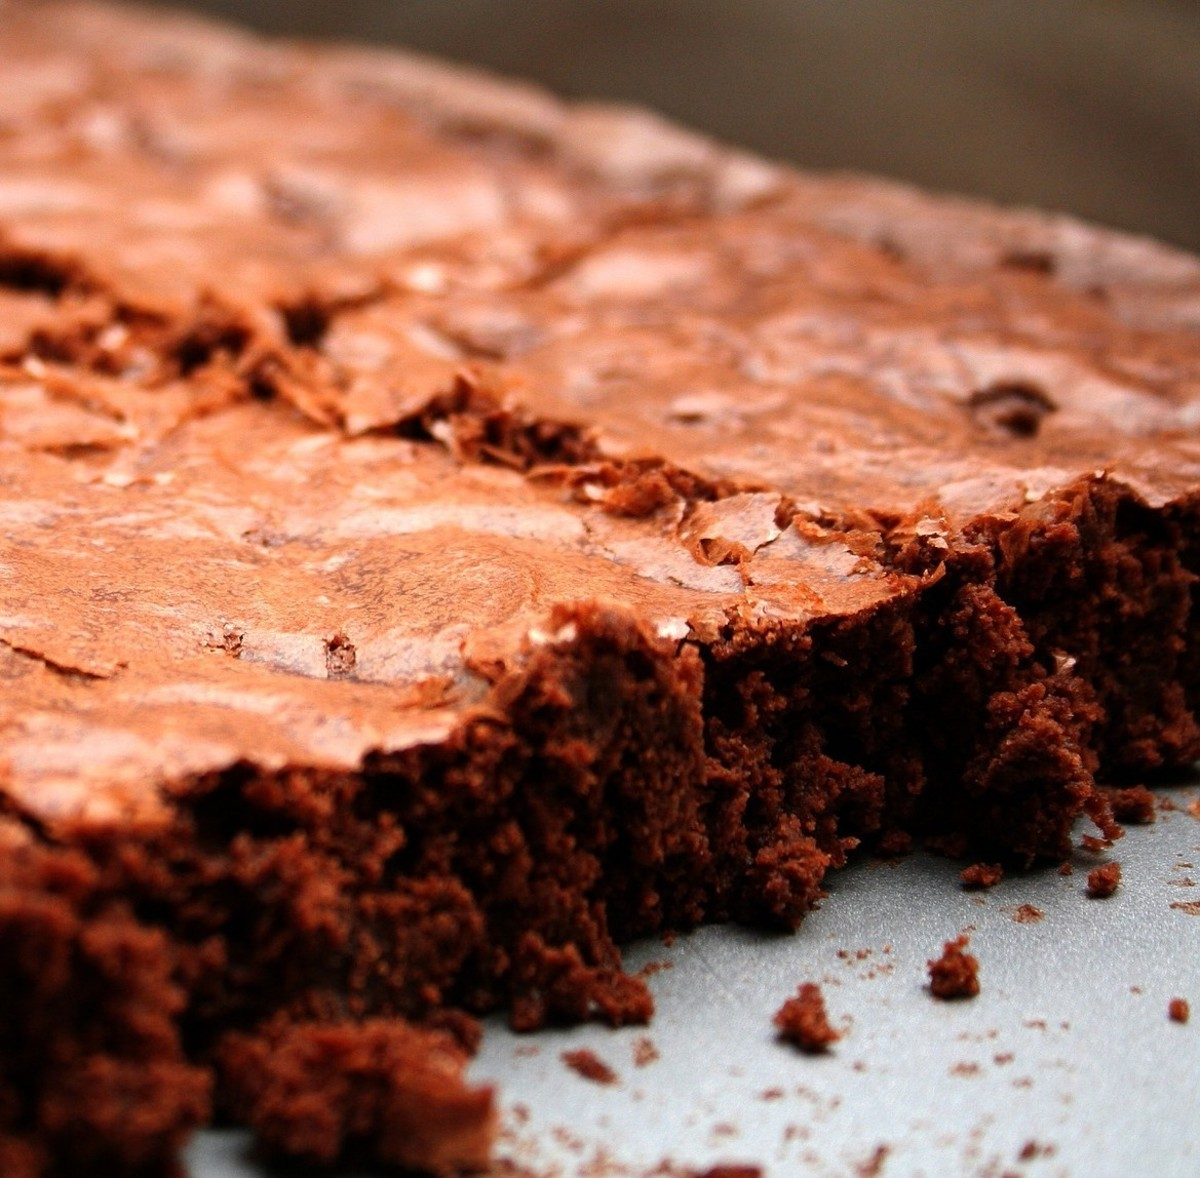 Have a chocolate craving that you just can't shake off? Whip up a batch of these dense, chocolatey brownies.